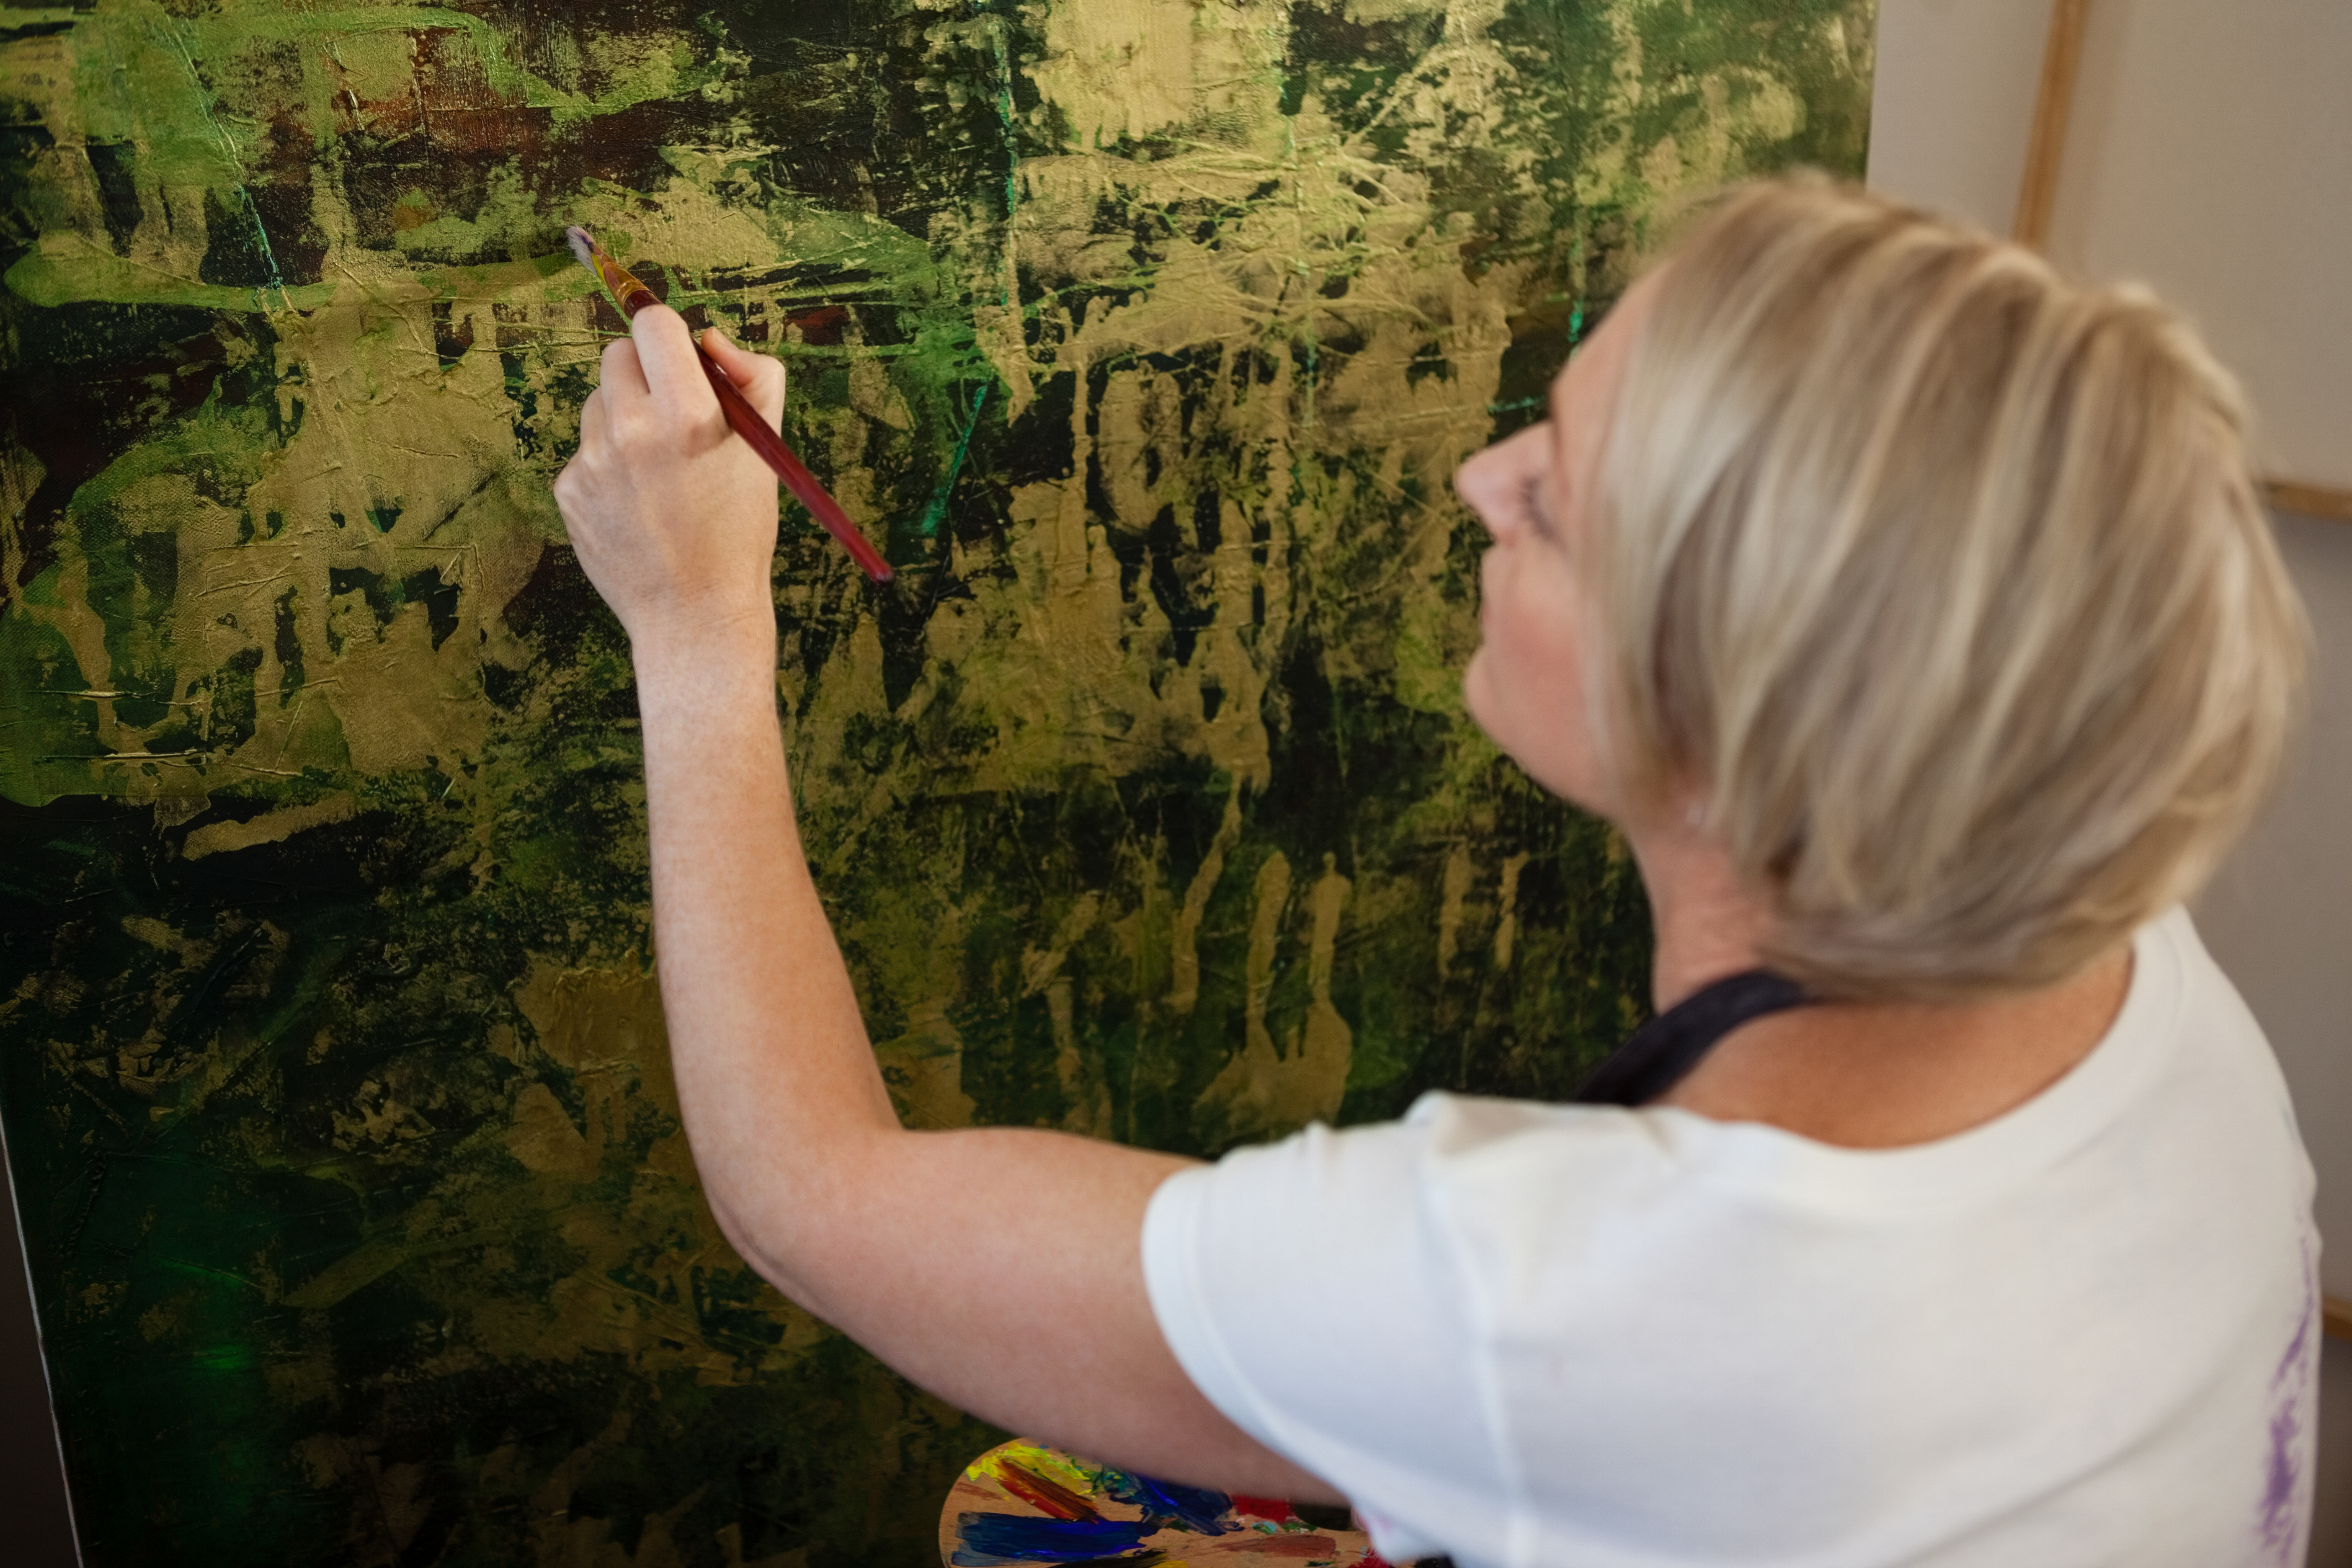 attentive-woman-painting-on-canvas-YBP6S